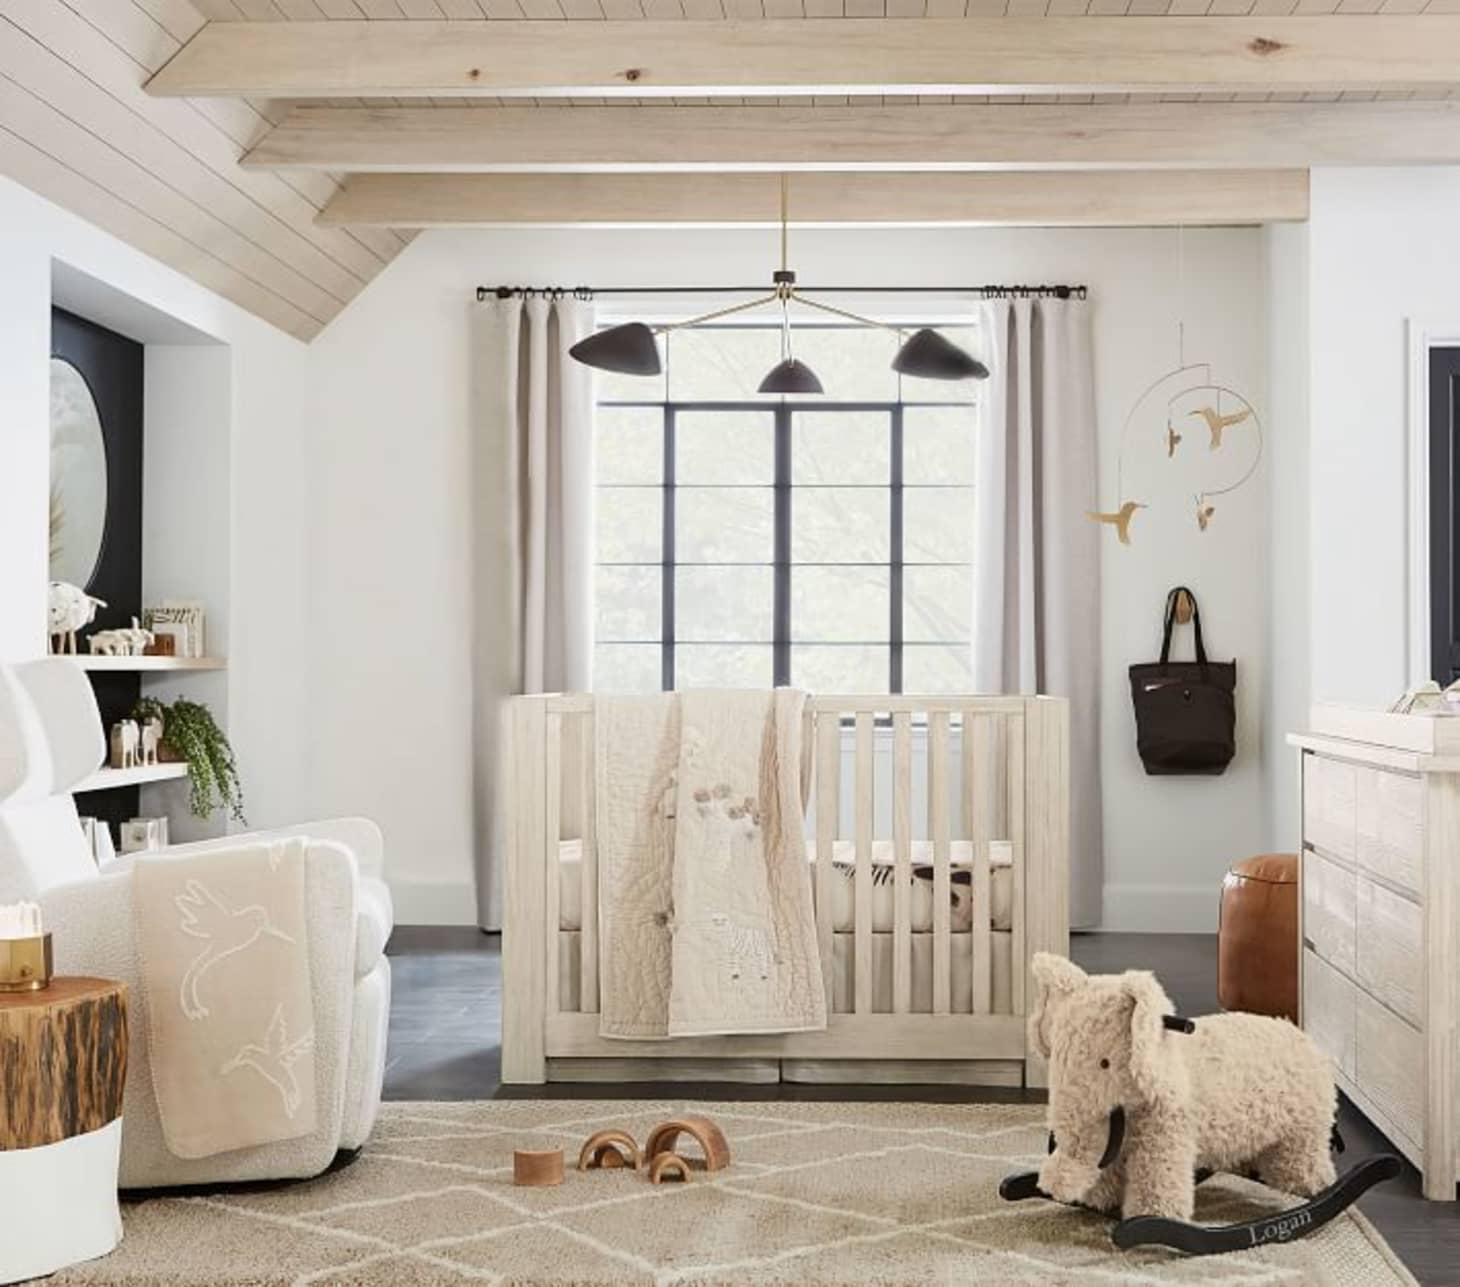 Jeremiah-Brent-Pottery-Barn-Kids-Collection-16520